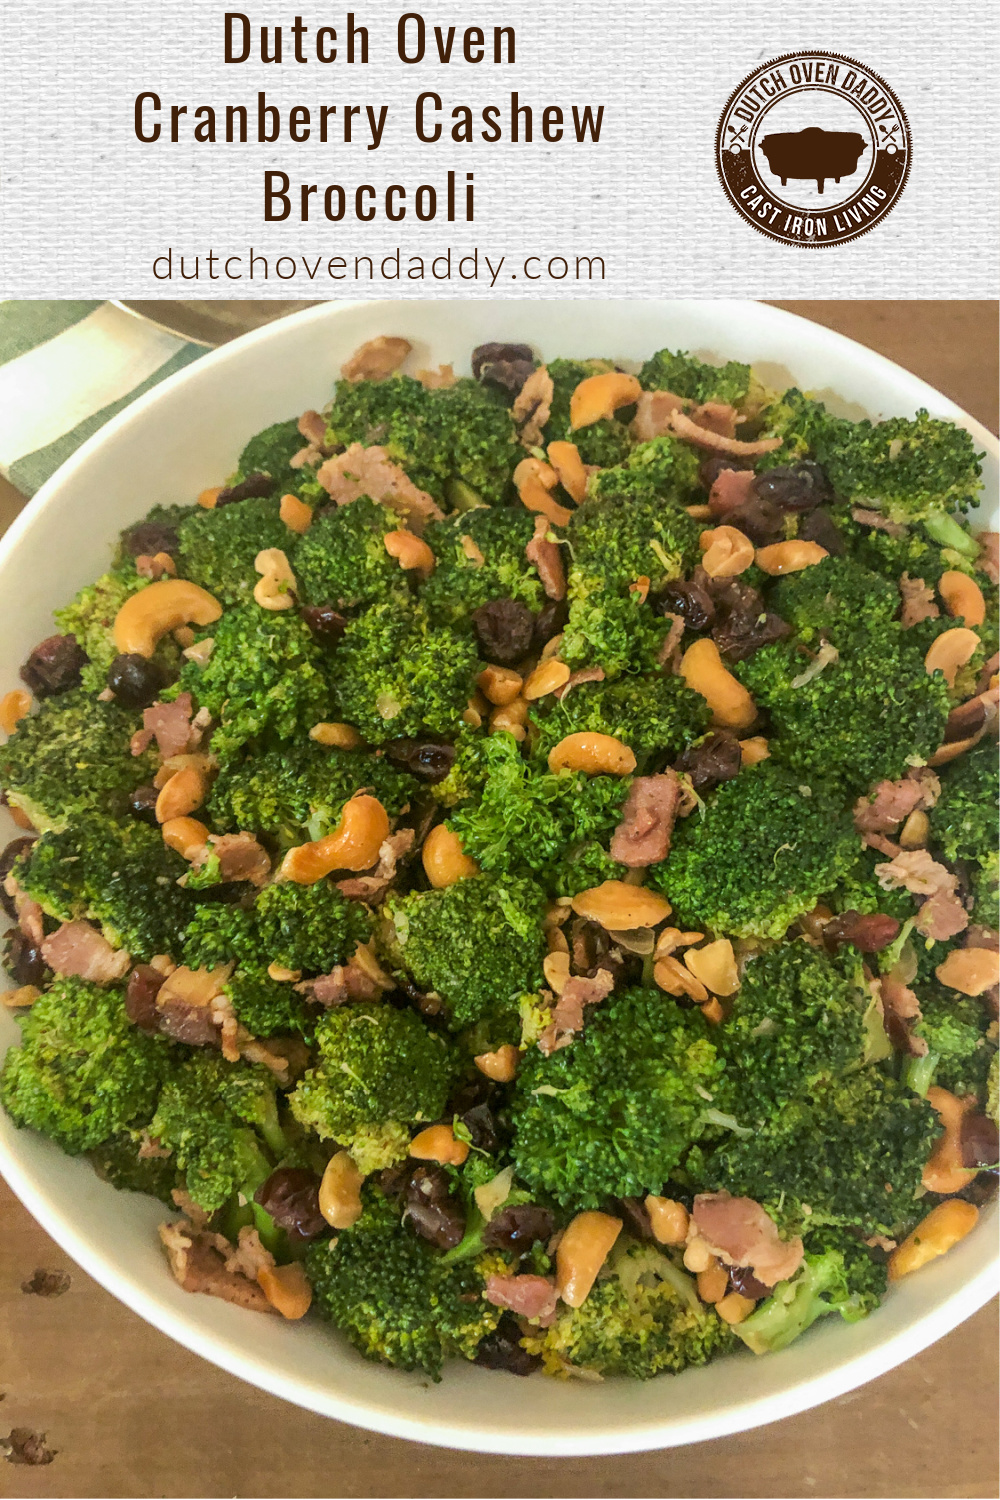 Sautéed broccoli, cashews, cranberries, bacon, and onions in a white bowl.